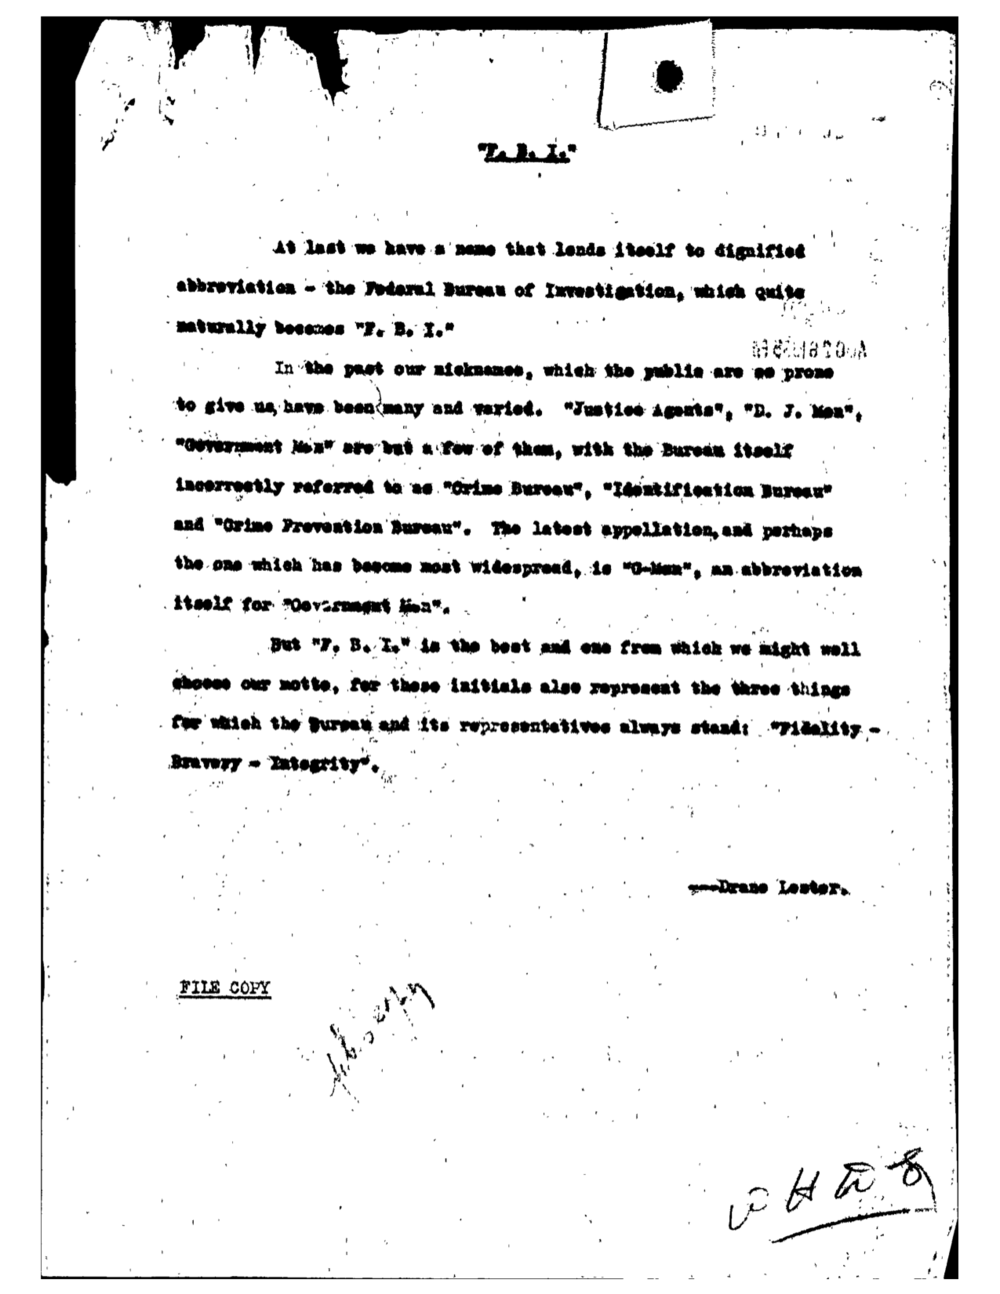 Lester's original document (copy) from FBI files.